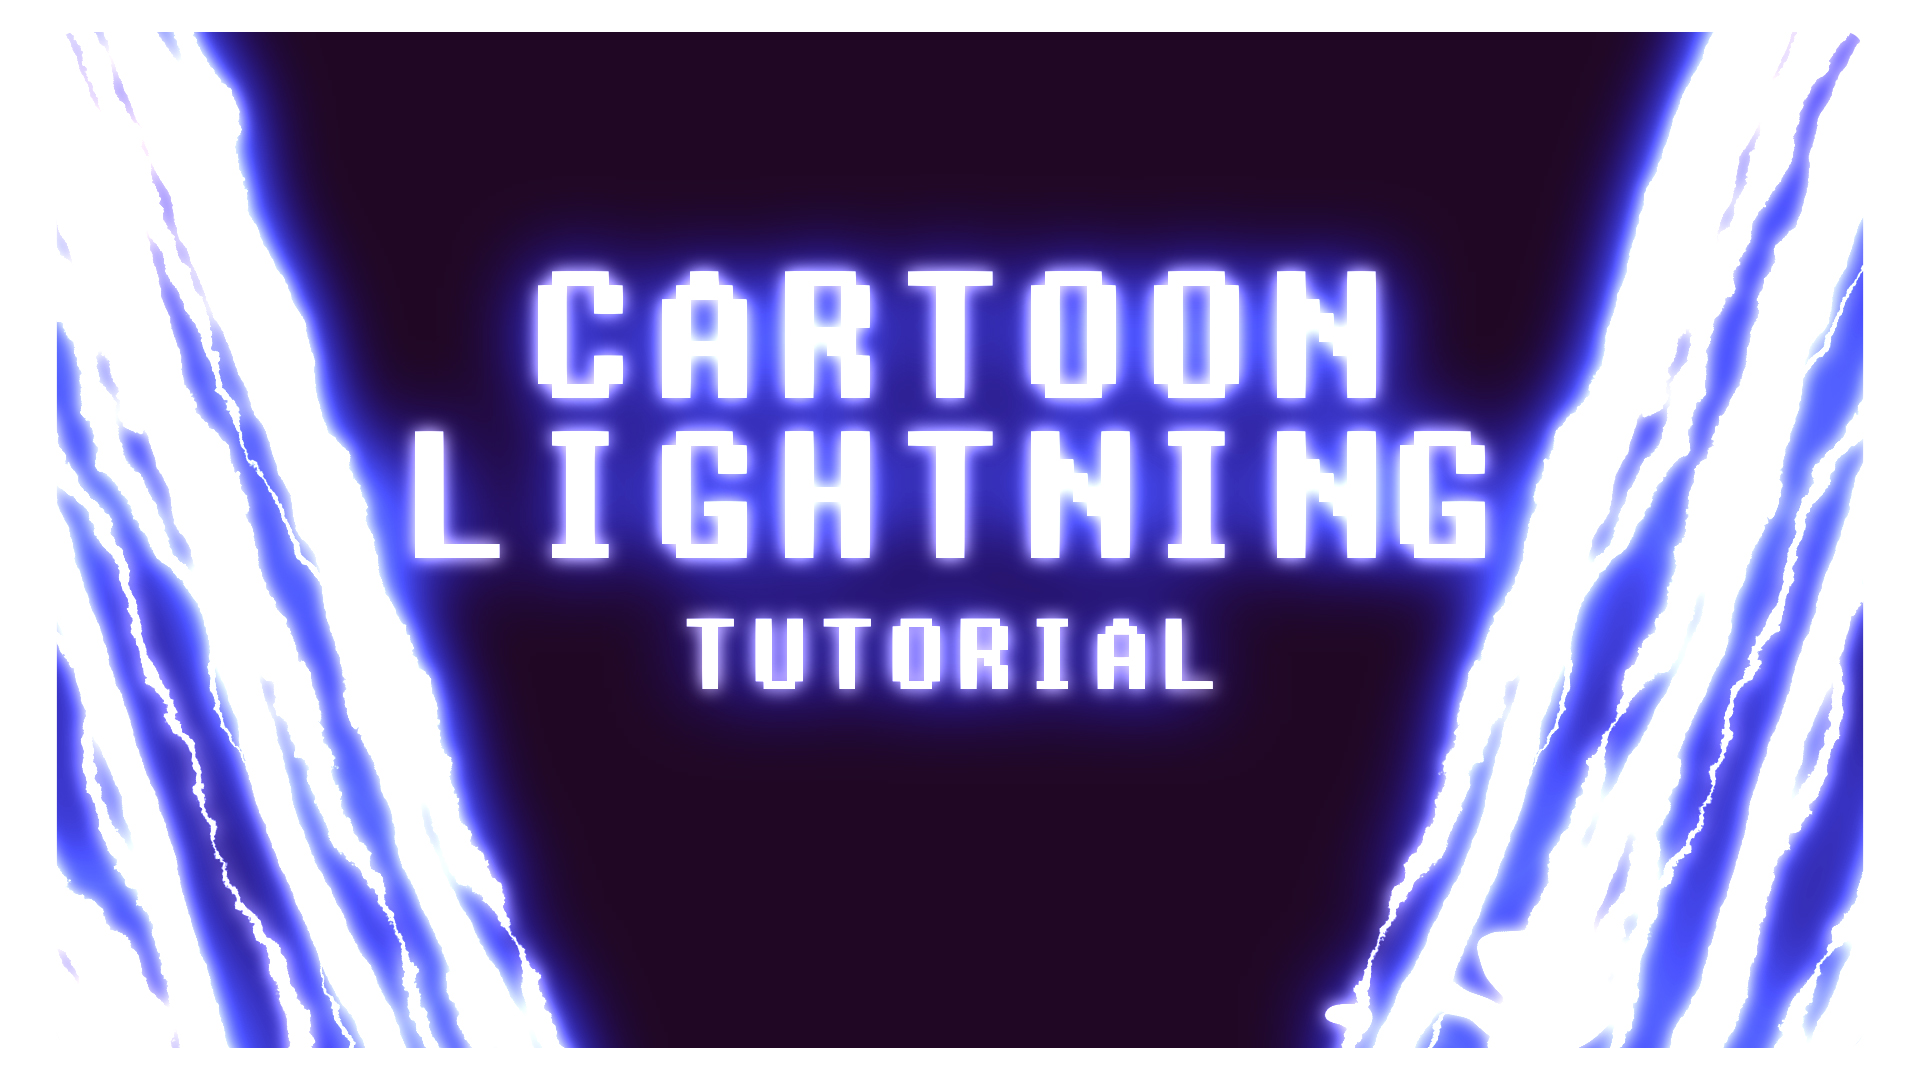 lightning in After Effects